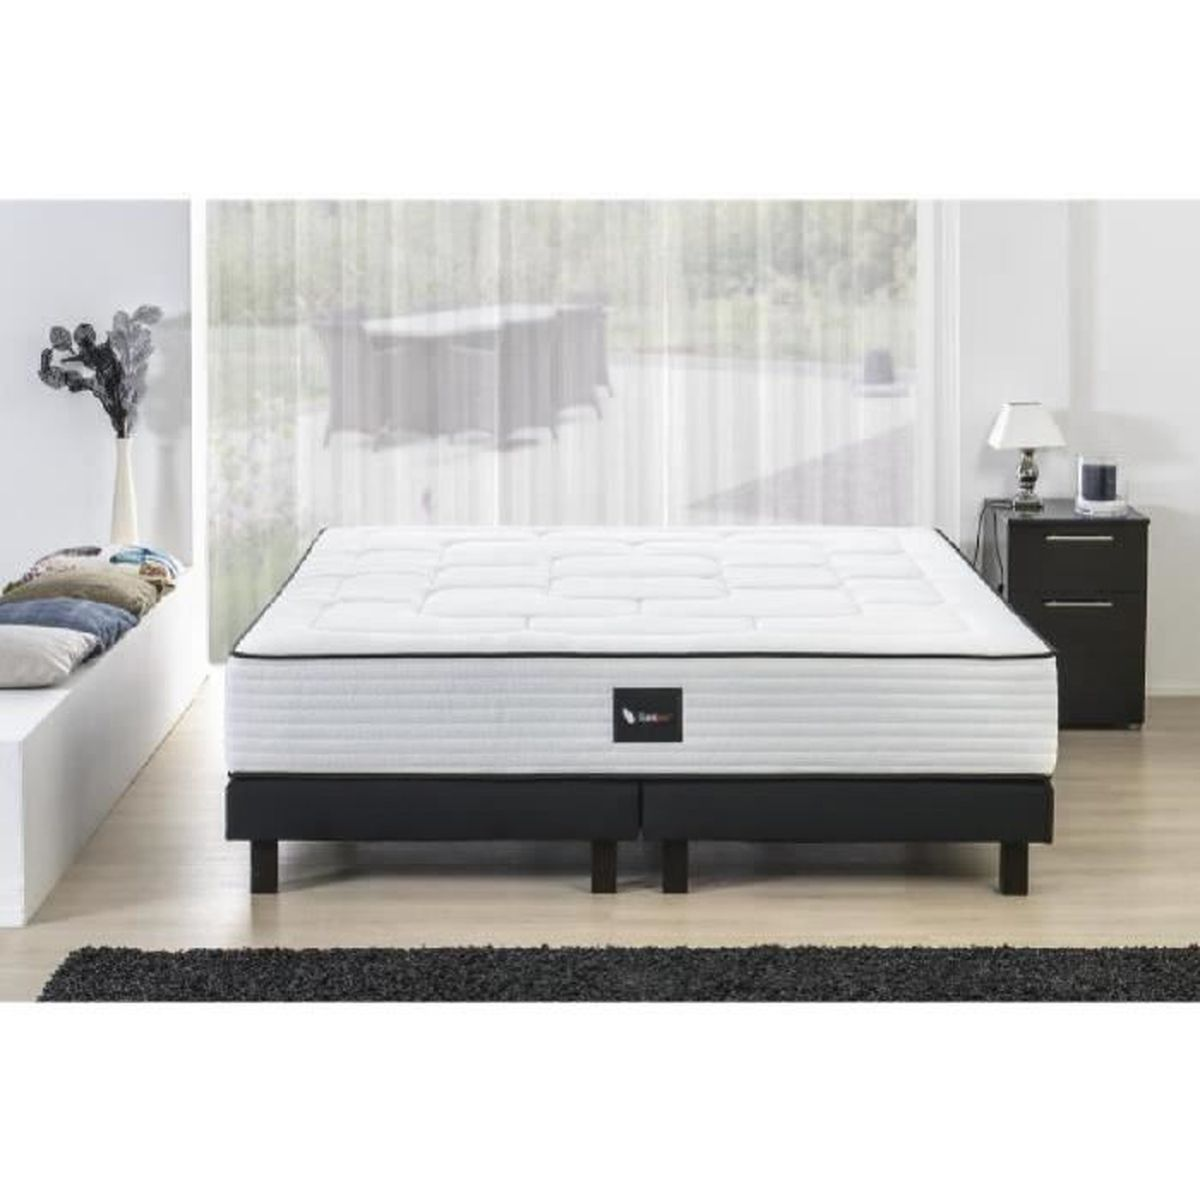 deko dream ensemble matelas sommier bois massif 180 x 200 800 ressorts ensach s ferme. Black Bedroom Furniture Sets. Home Design Ideas